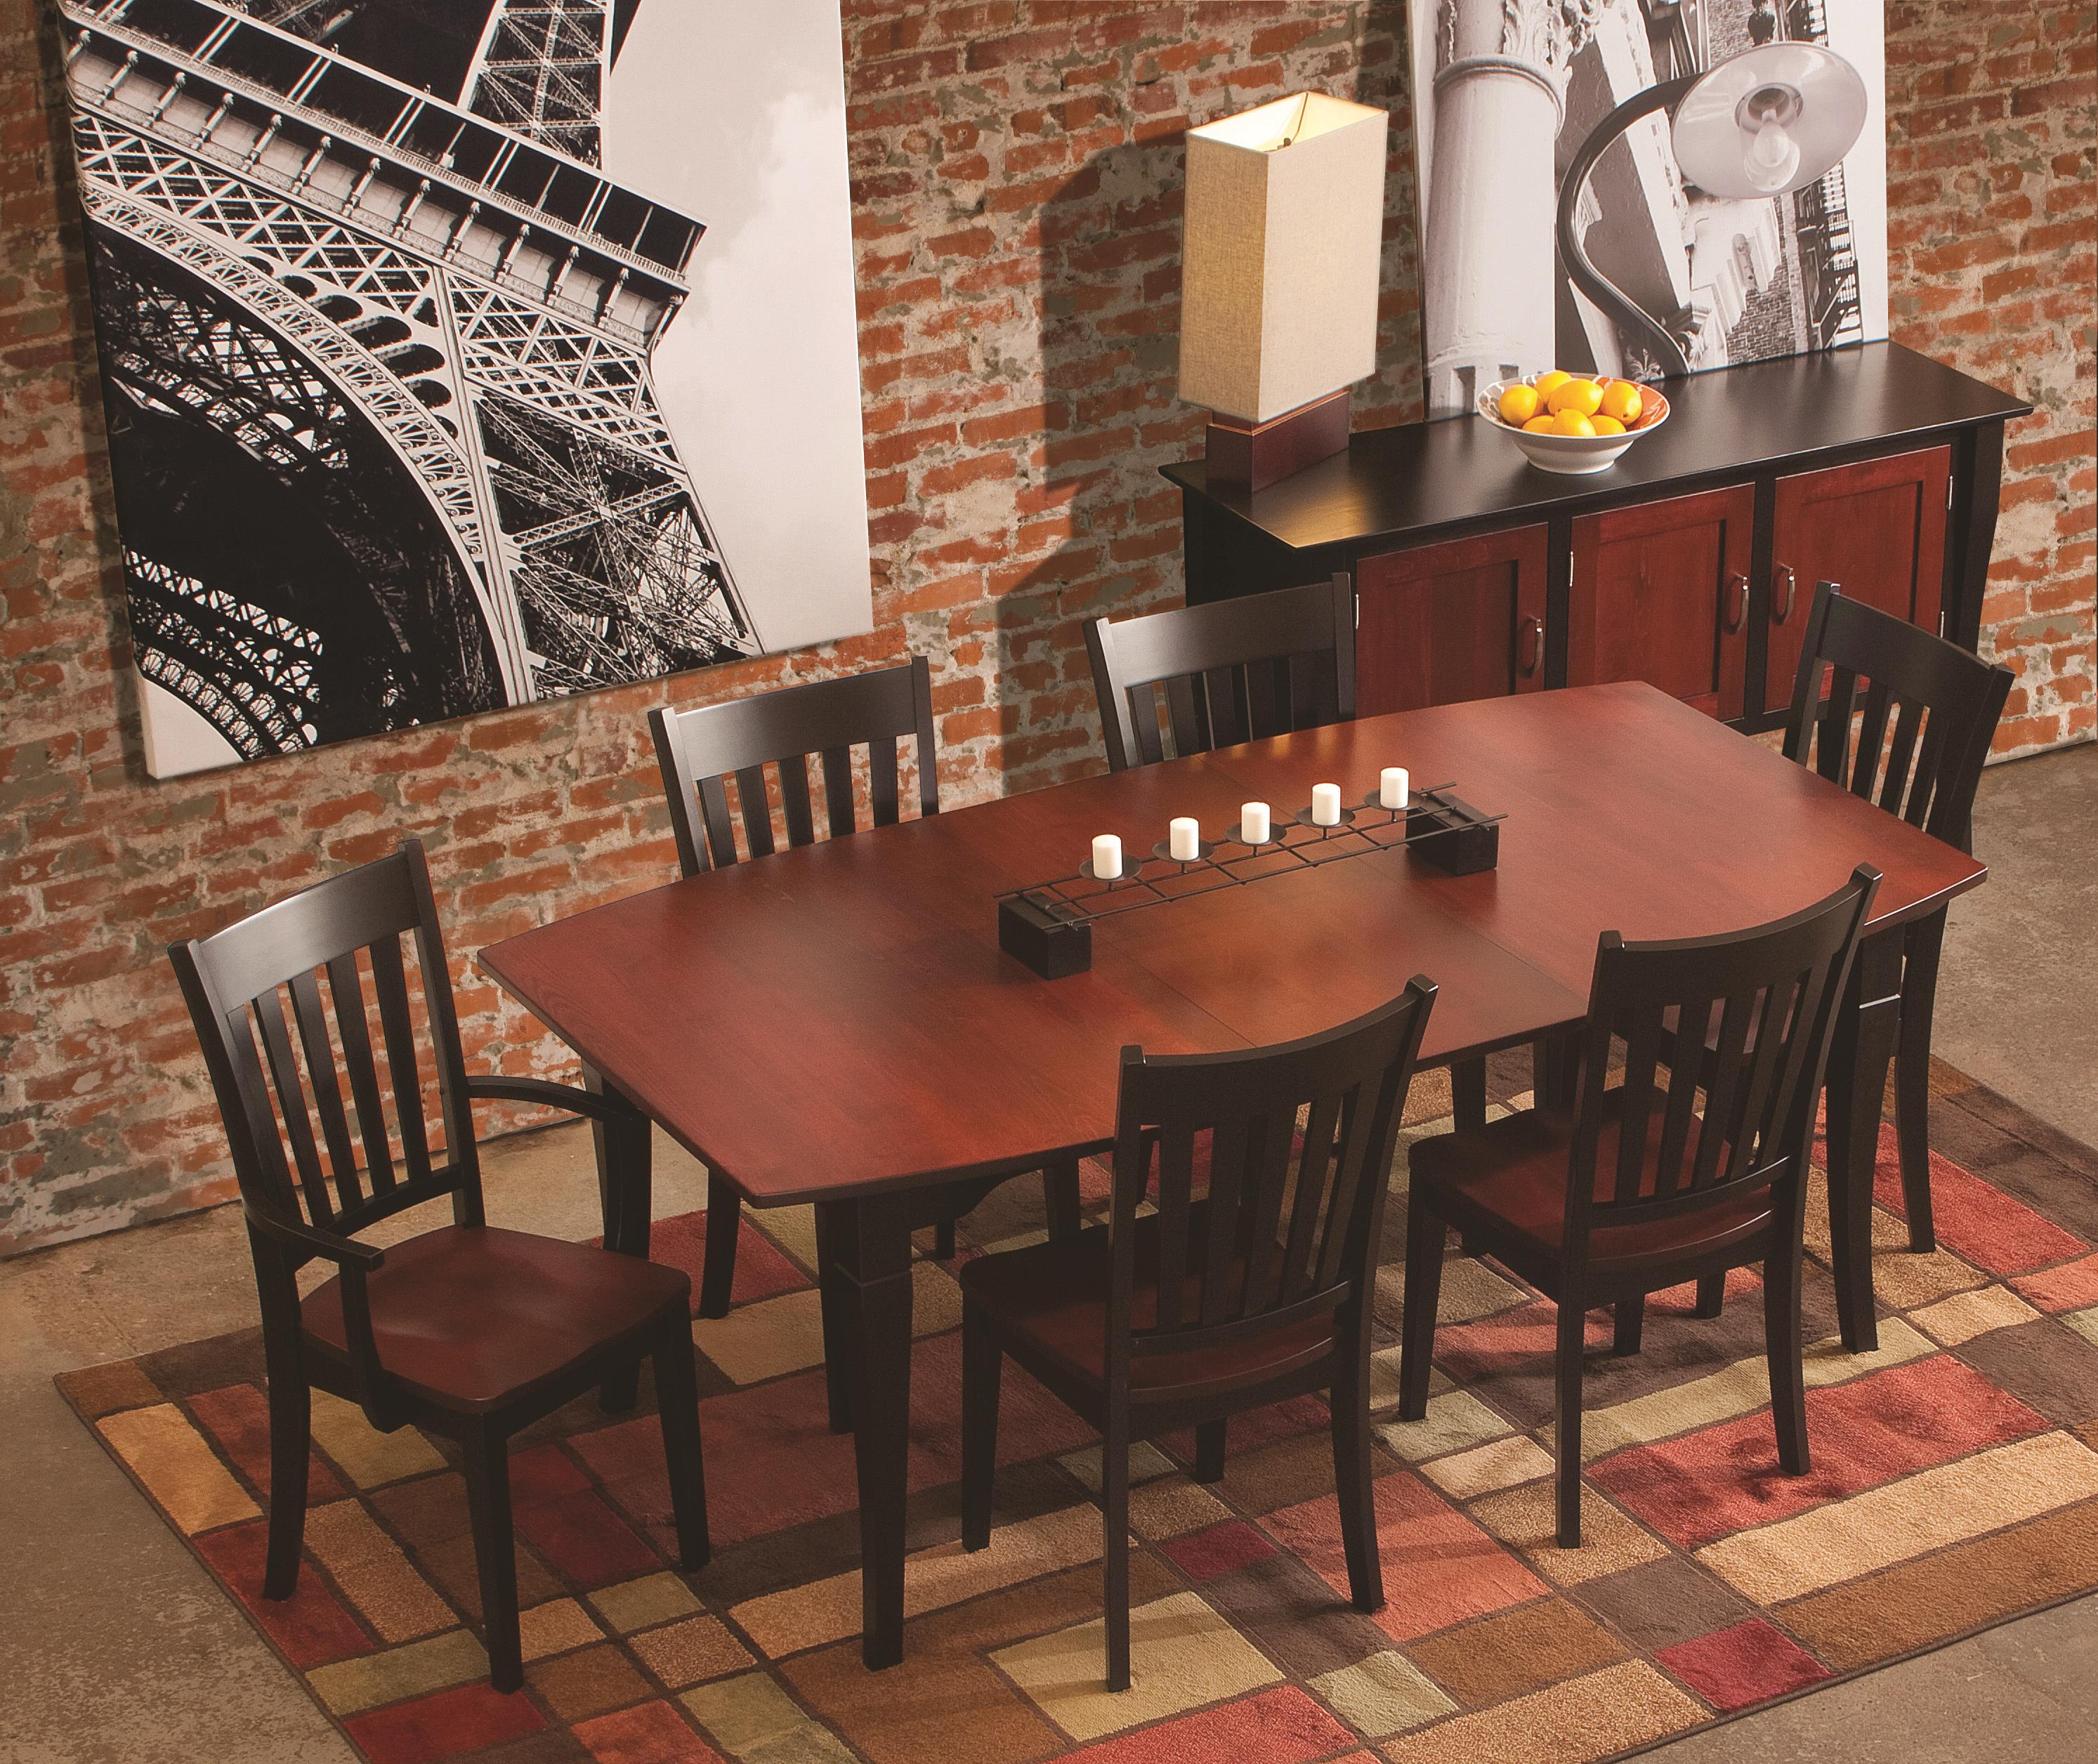 Conrad Grebel Montclair X3460 Boat Shaped Dining Table Furniture And Appliancemart Dining